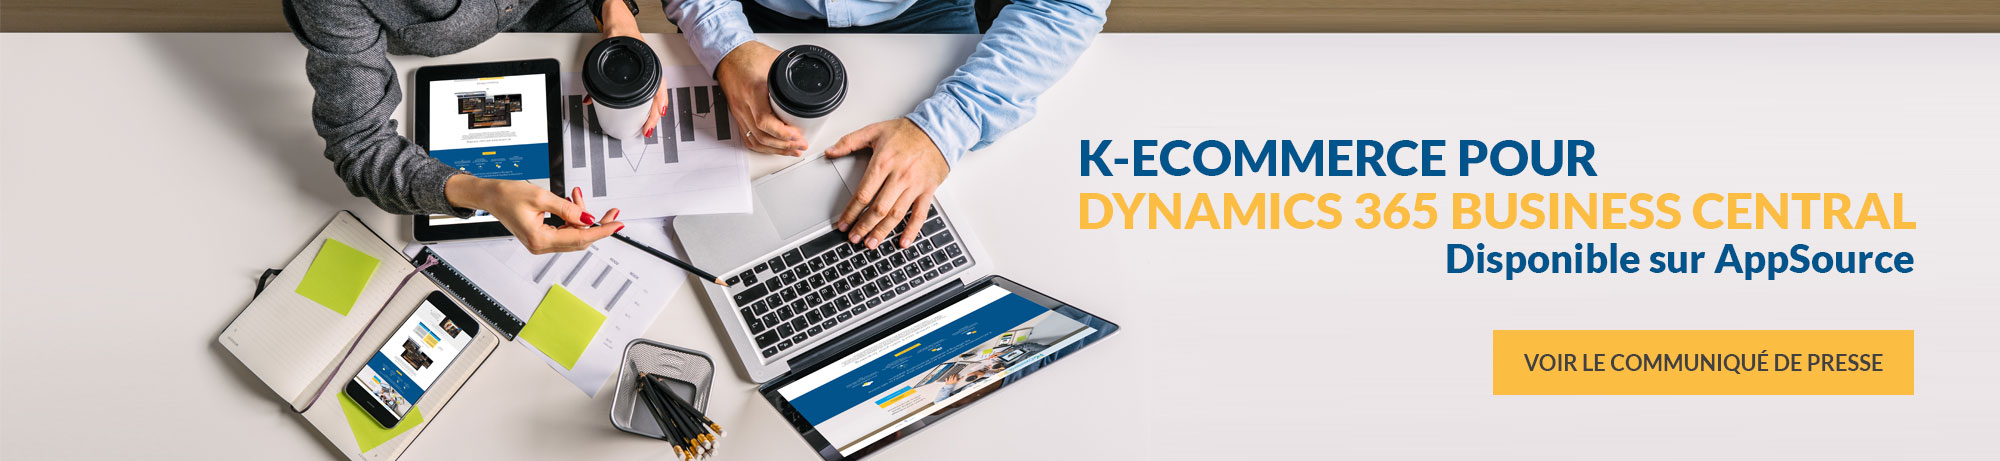 k-eCommerce pour Dynamics 365 Business Central